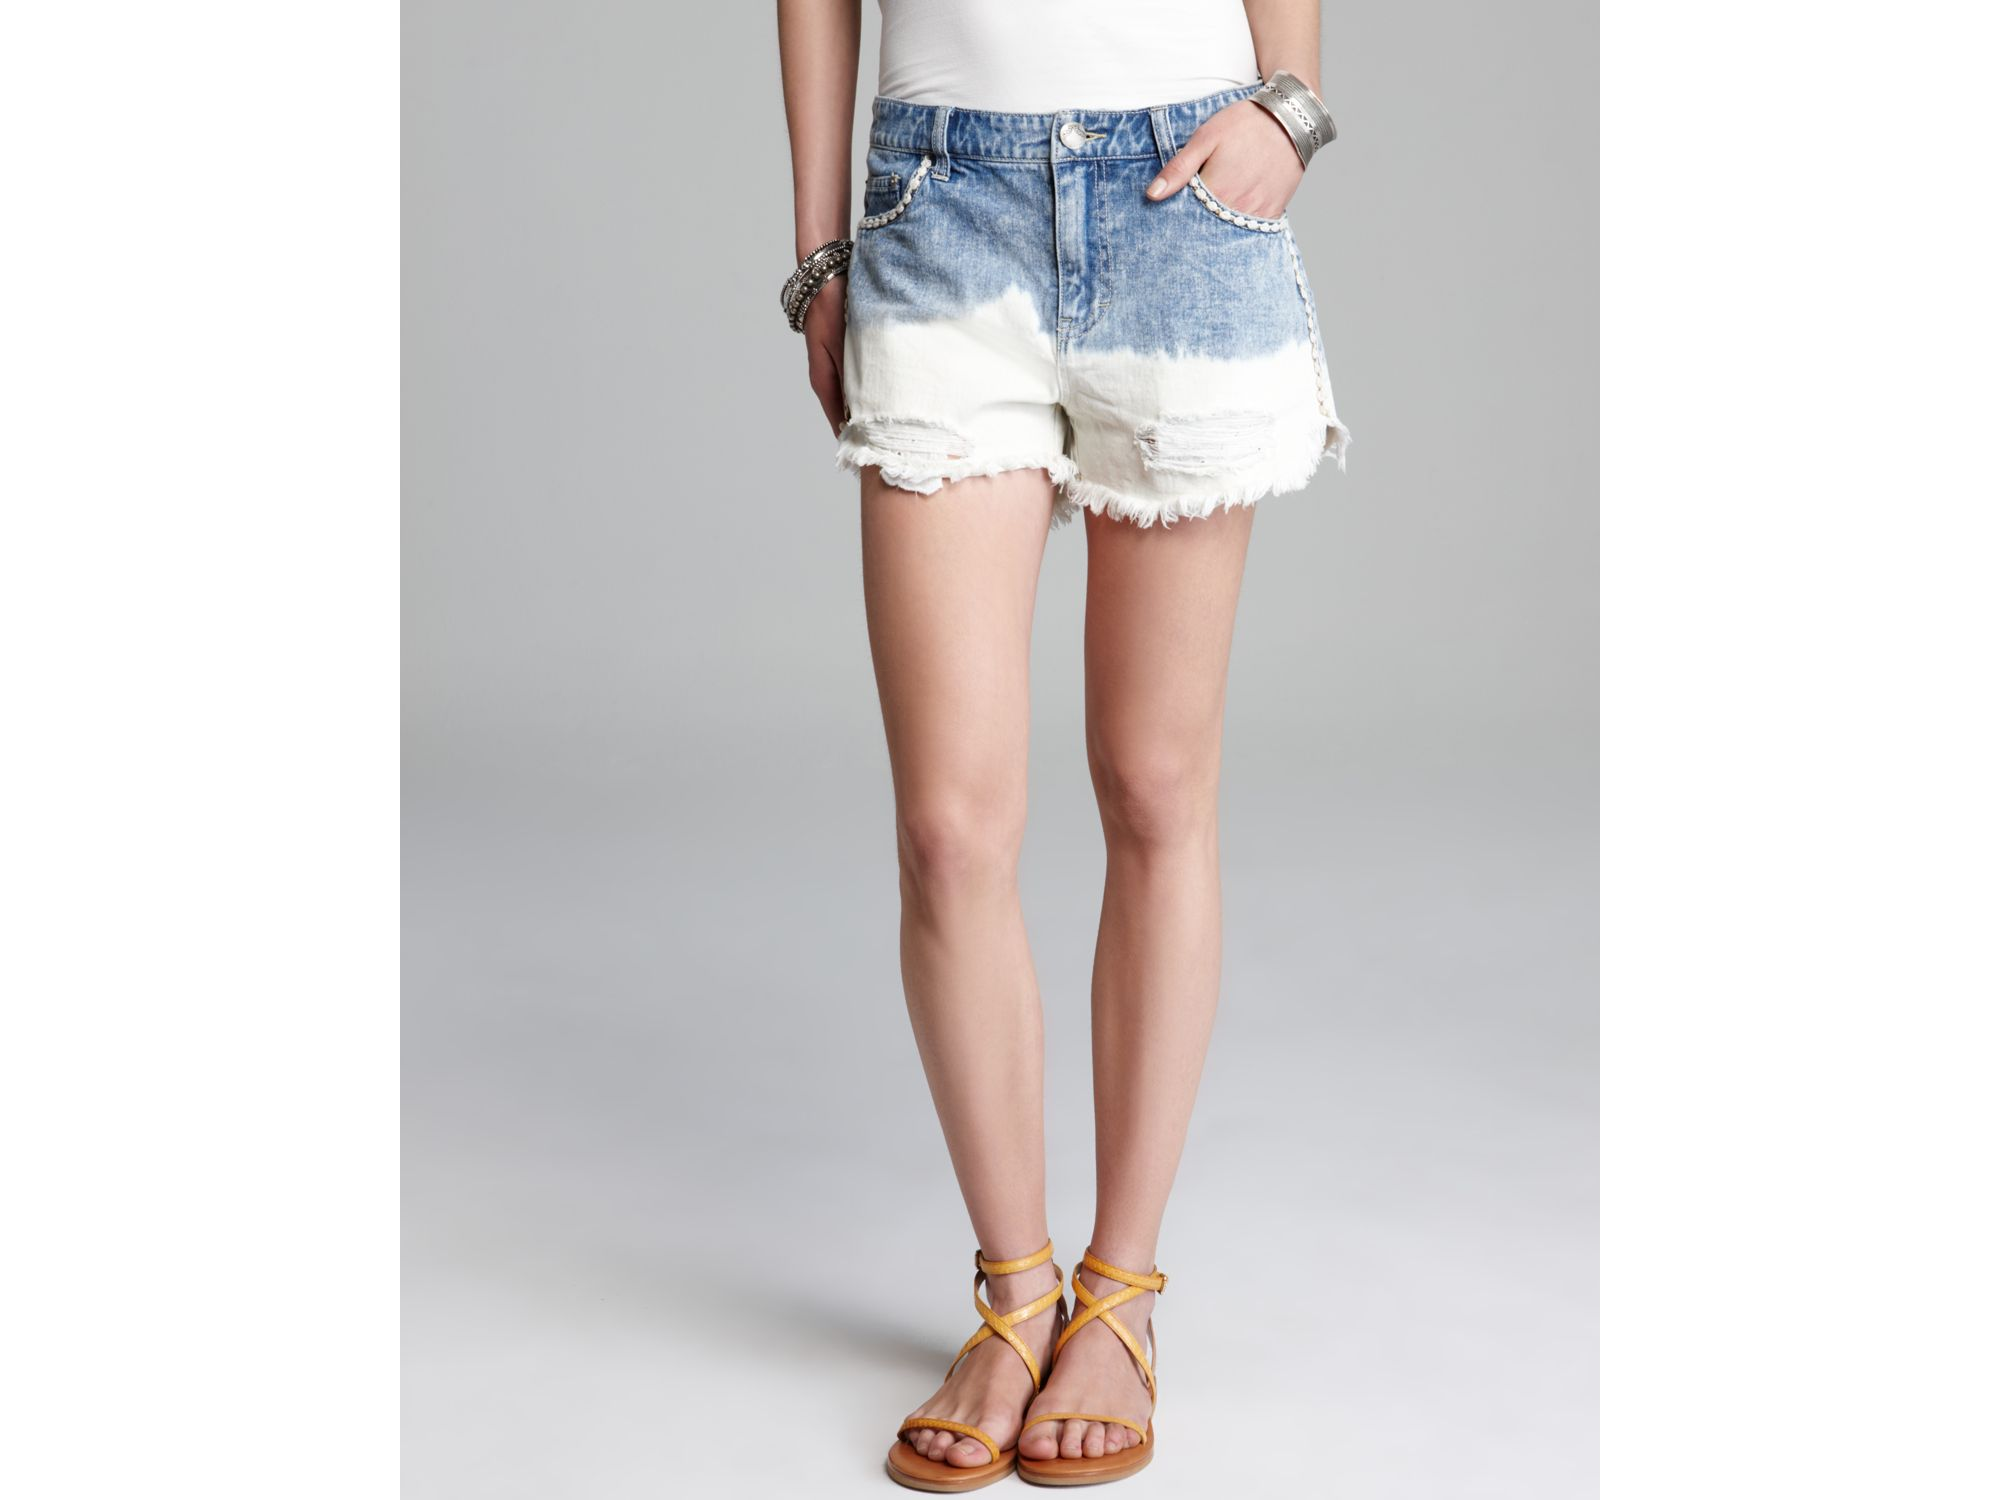 0a27b6c74f Free People Shorts Ripped Denim Floral Embroidered Cutoffs in Blue ...